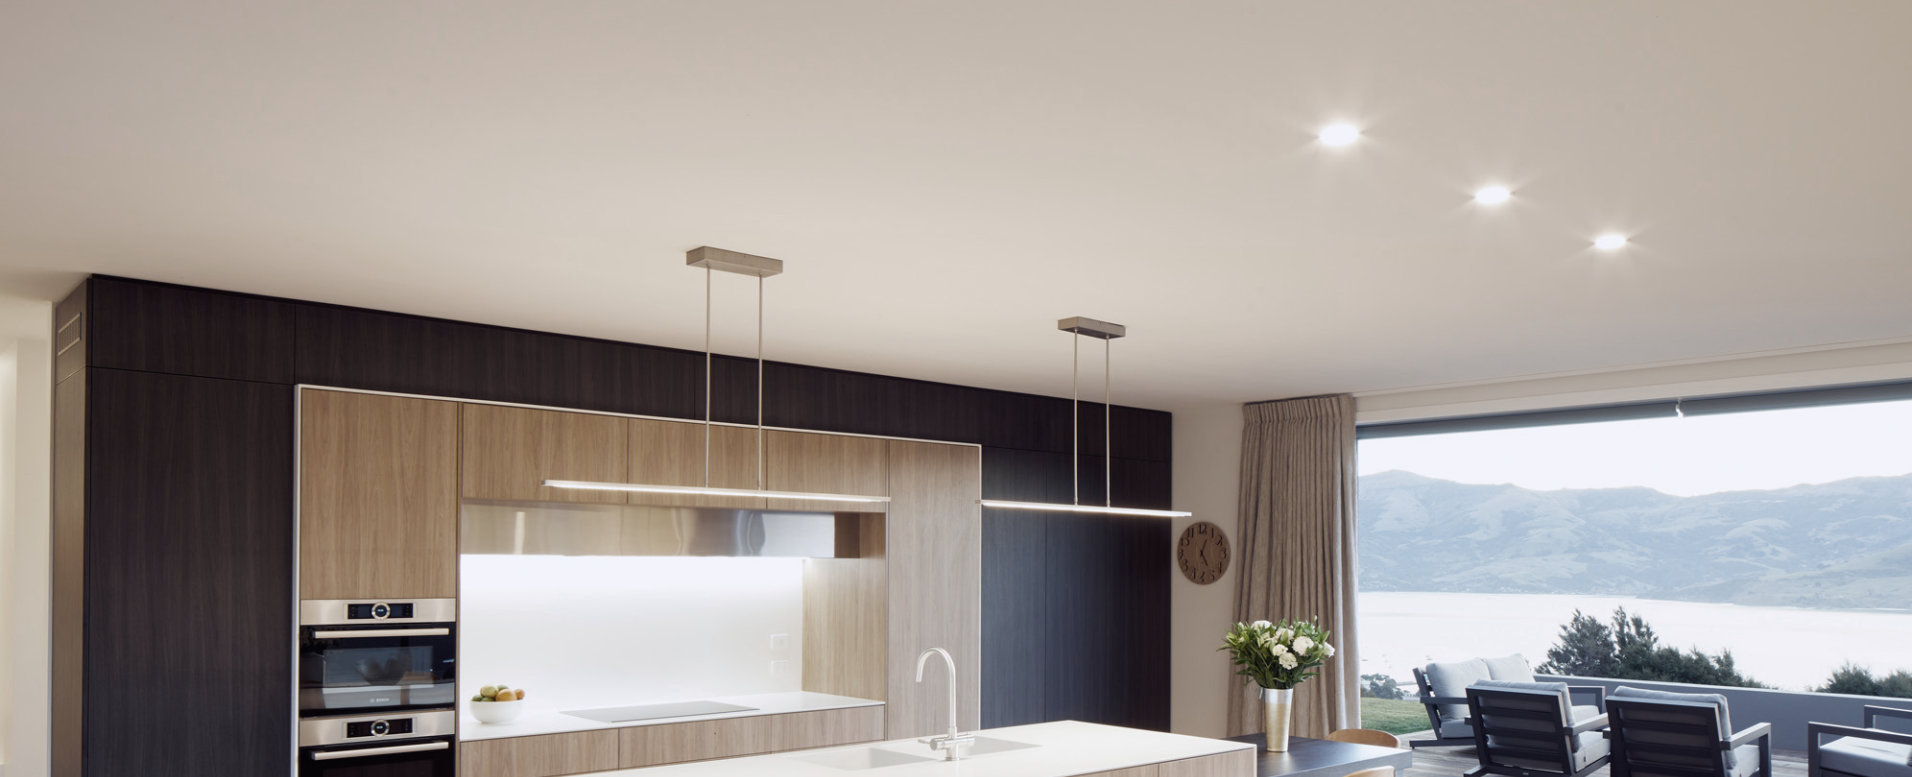 Modern Age Kitchens and Joinery - Carpenters and Cabinetmakers NZ